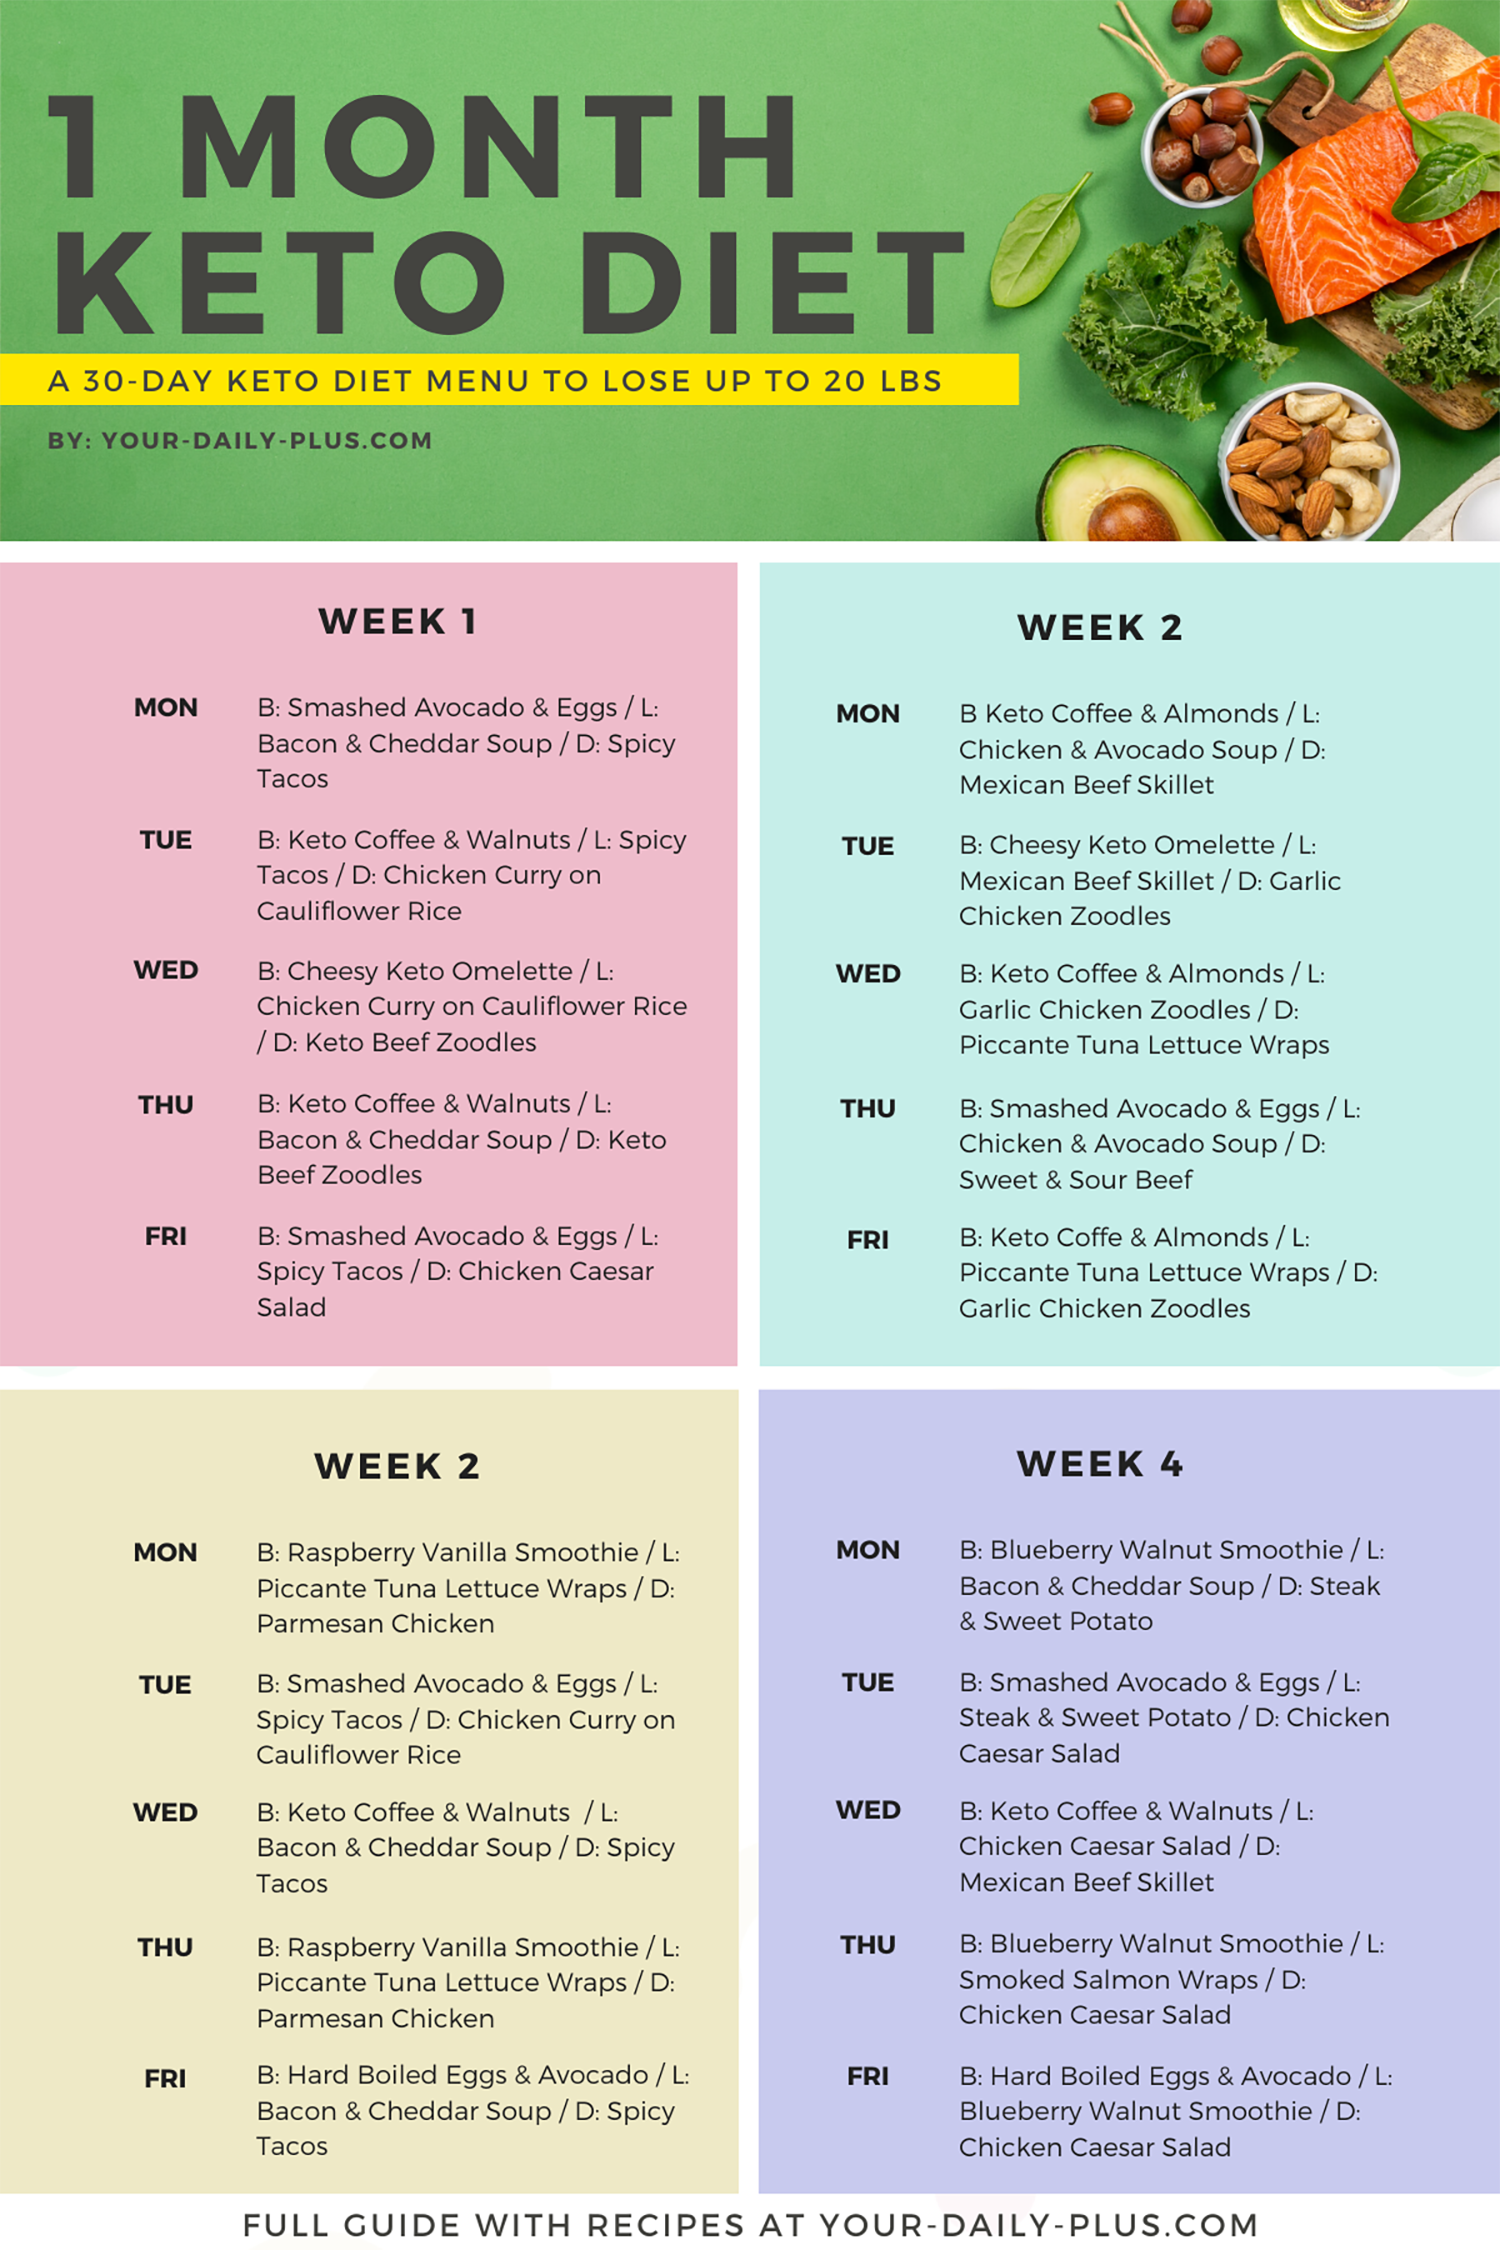 30 Day Low Carb Keto Diet Plan For Beginners Ketogenicdiet Ketodietrecipes Keto Dietrecipes Ketor Keto Diet Guide Ketogenic Diet Meal Plan Keto Diet Menu